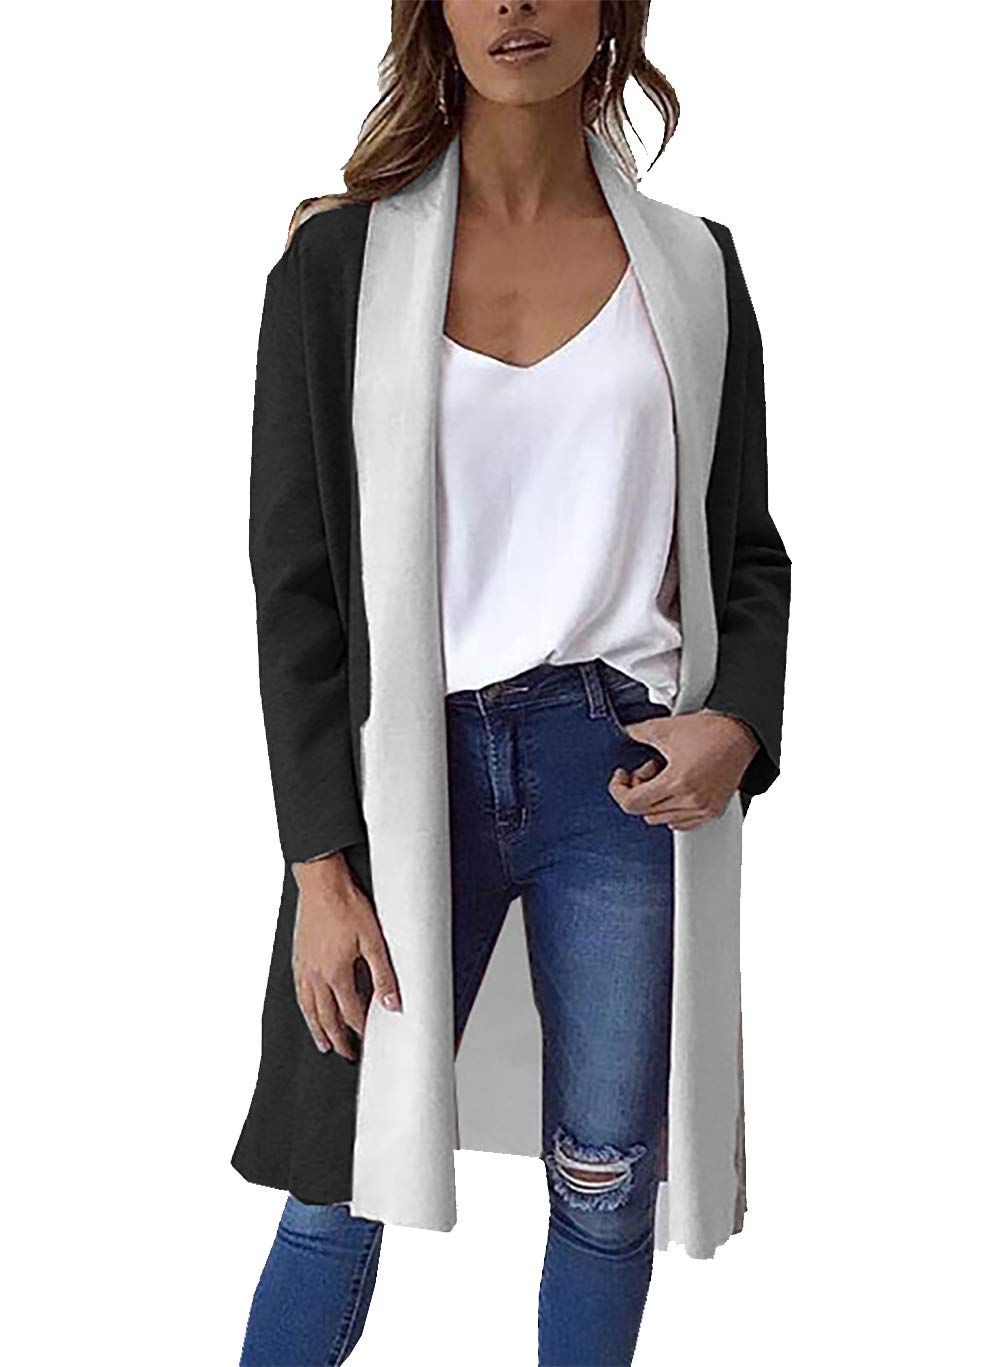 PRETTYGARDEN Women's Long Sleeve Shawl Collar Draped Open Front Long Cardigan Thick Coat Outwear  (Black, Large)